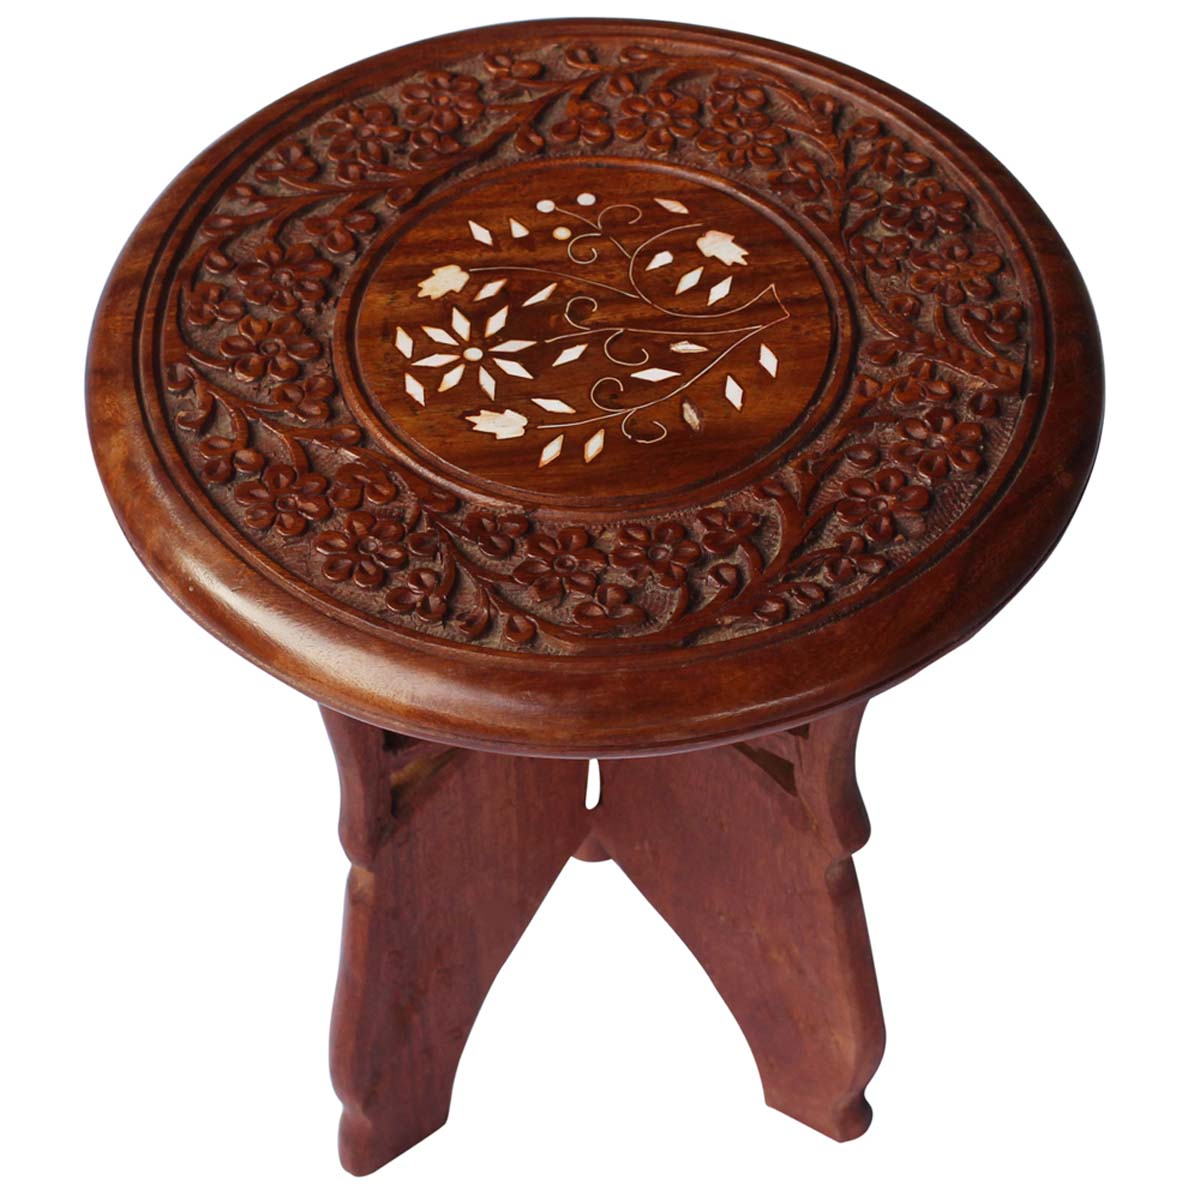 whole hand carved leg stand round wooden accent table with natural wood bulk decorative detachable retro console patterned armchair nautical folding concrete top coffee pottery